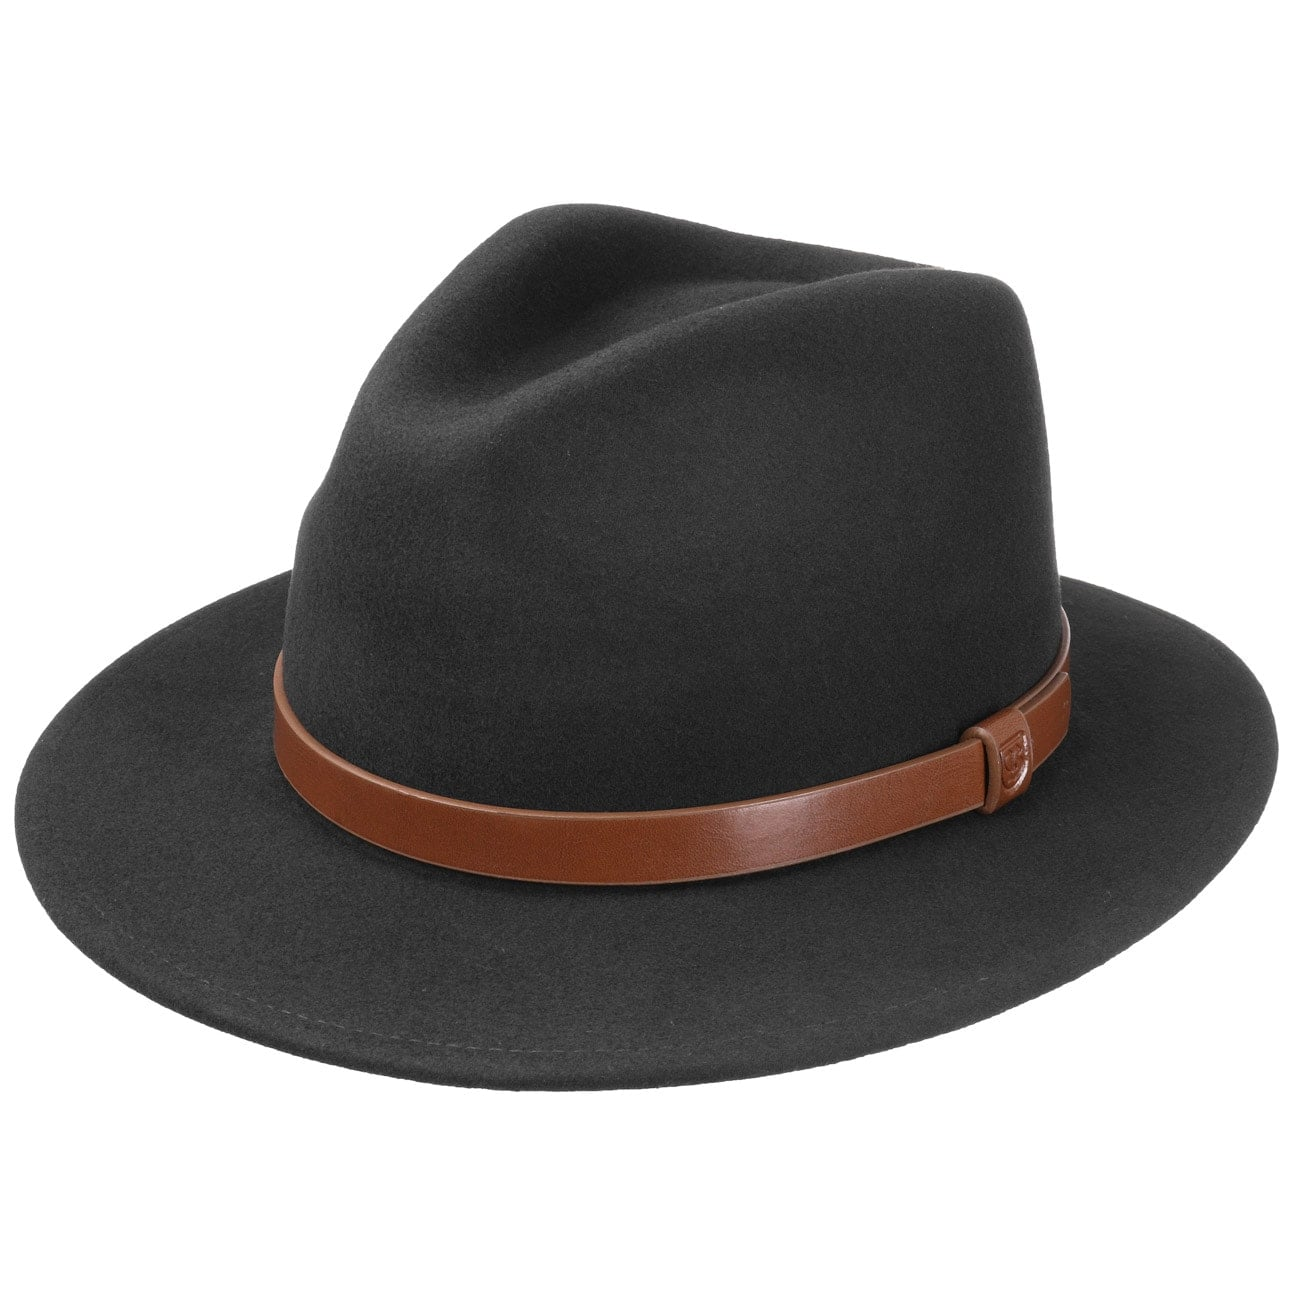 Teston Fedora Wollfilzhut by Brixton